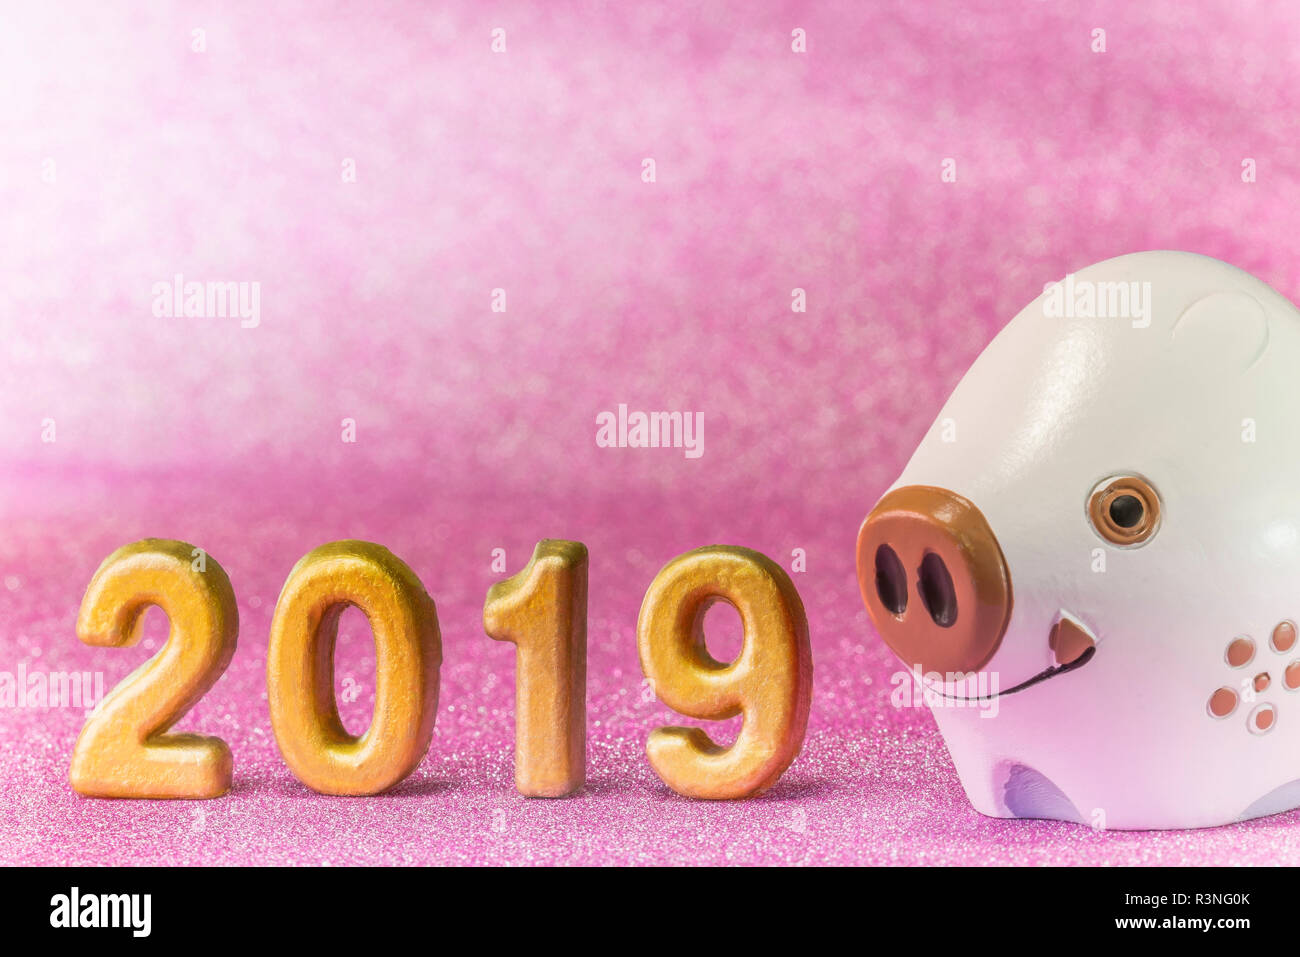 Pink Glitter Background For Japanese New Year S Cards With Cute